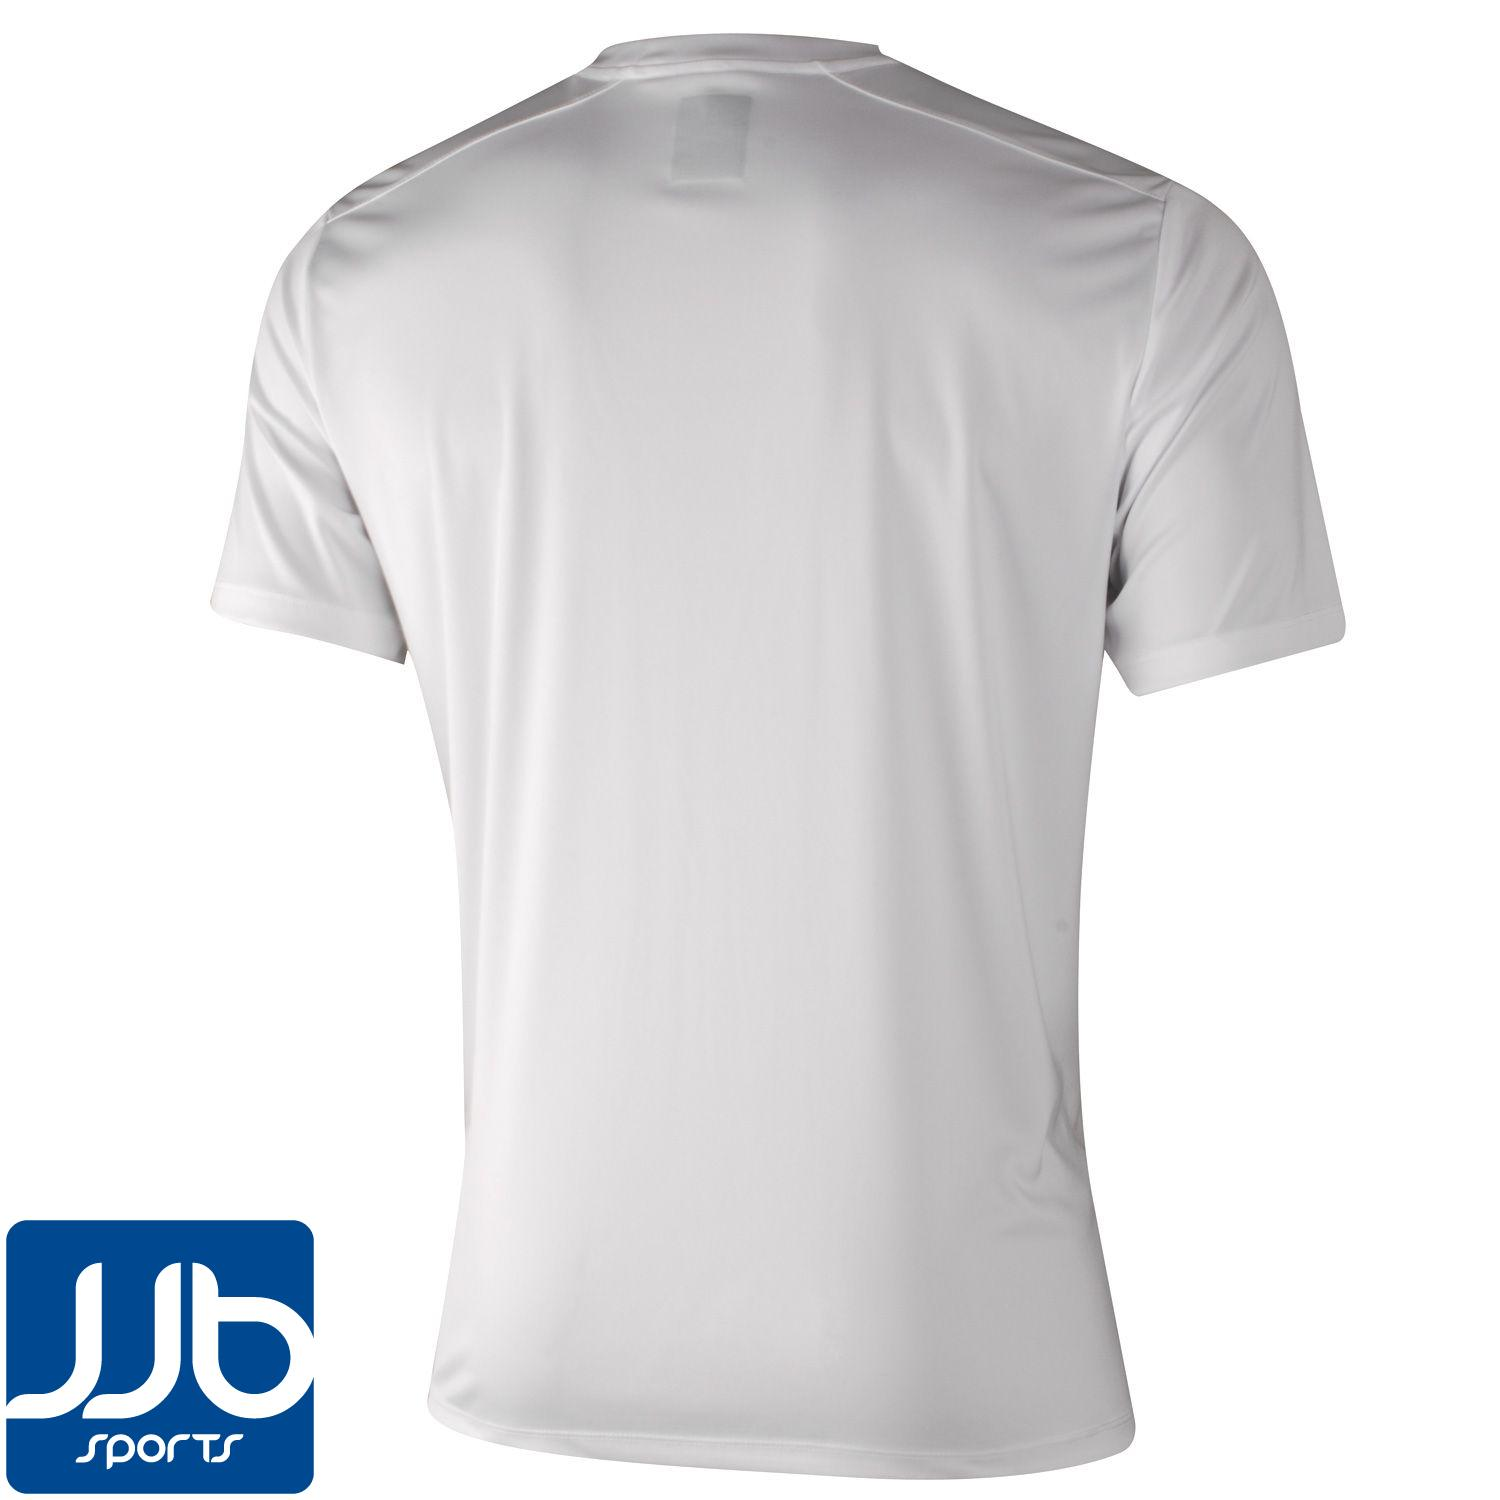 England mens polyester t shirt 2012 wd ebay for Polyester t shirts for men